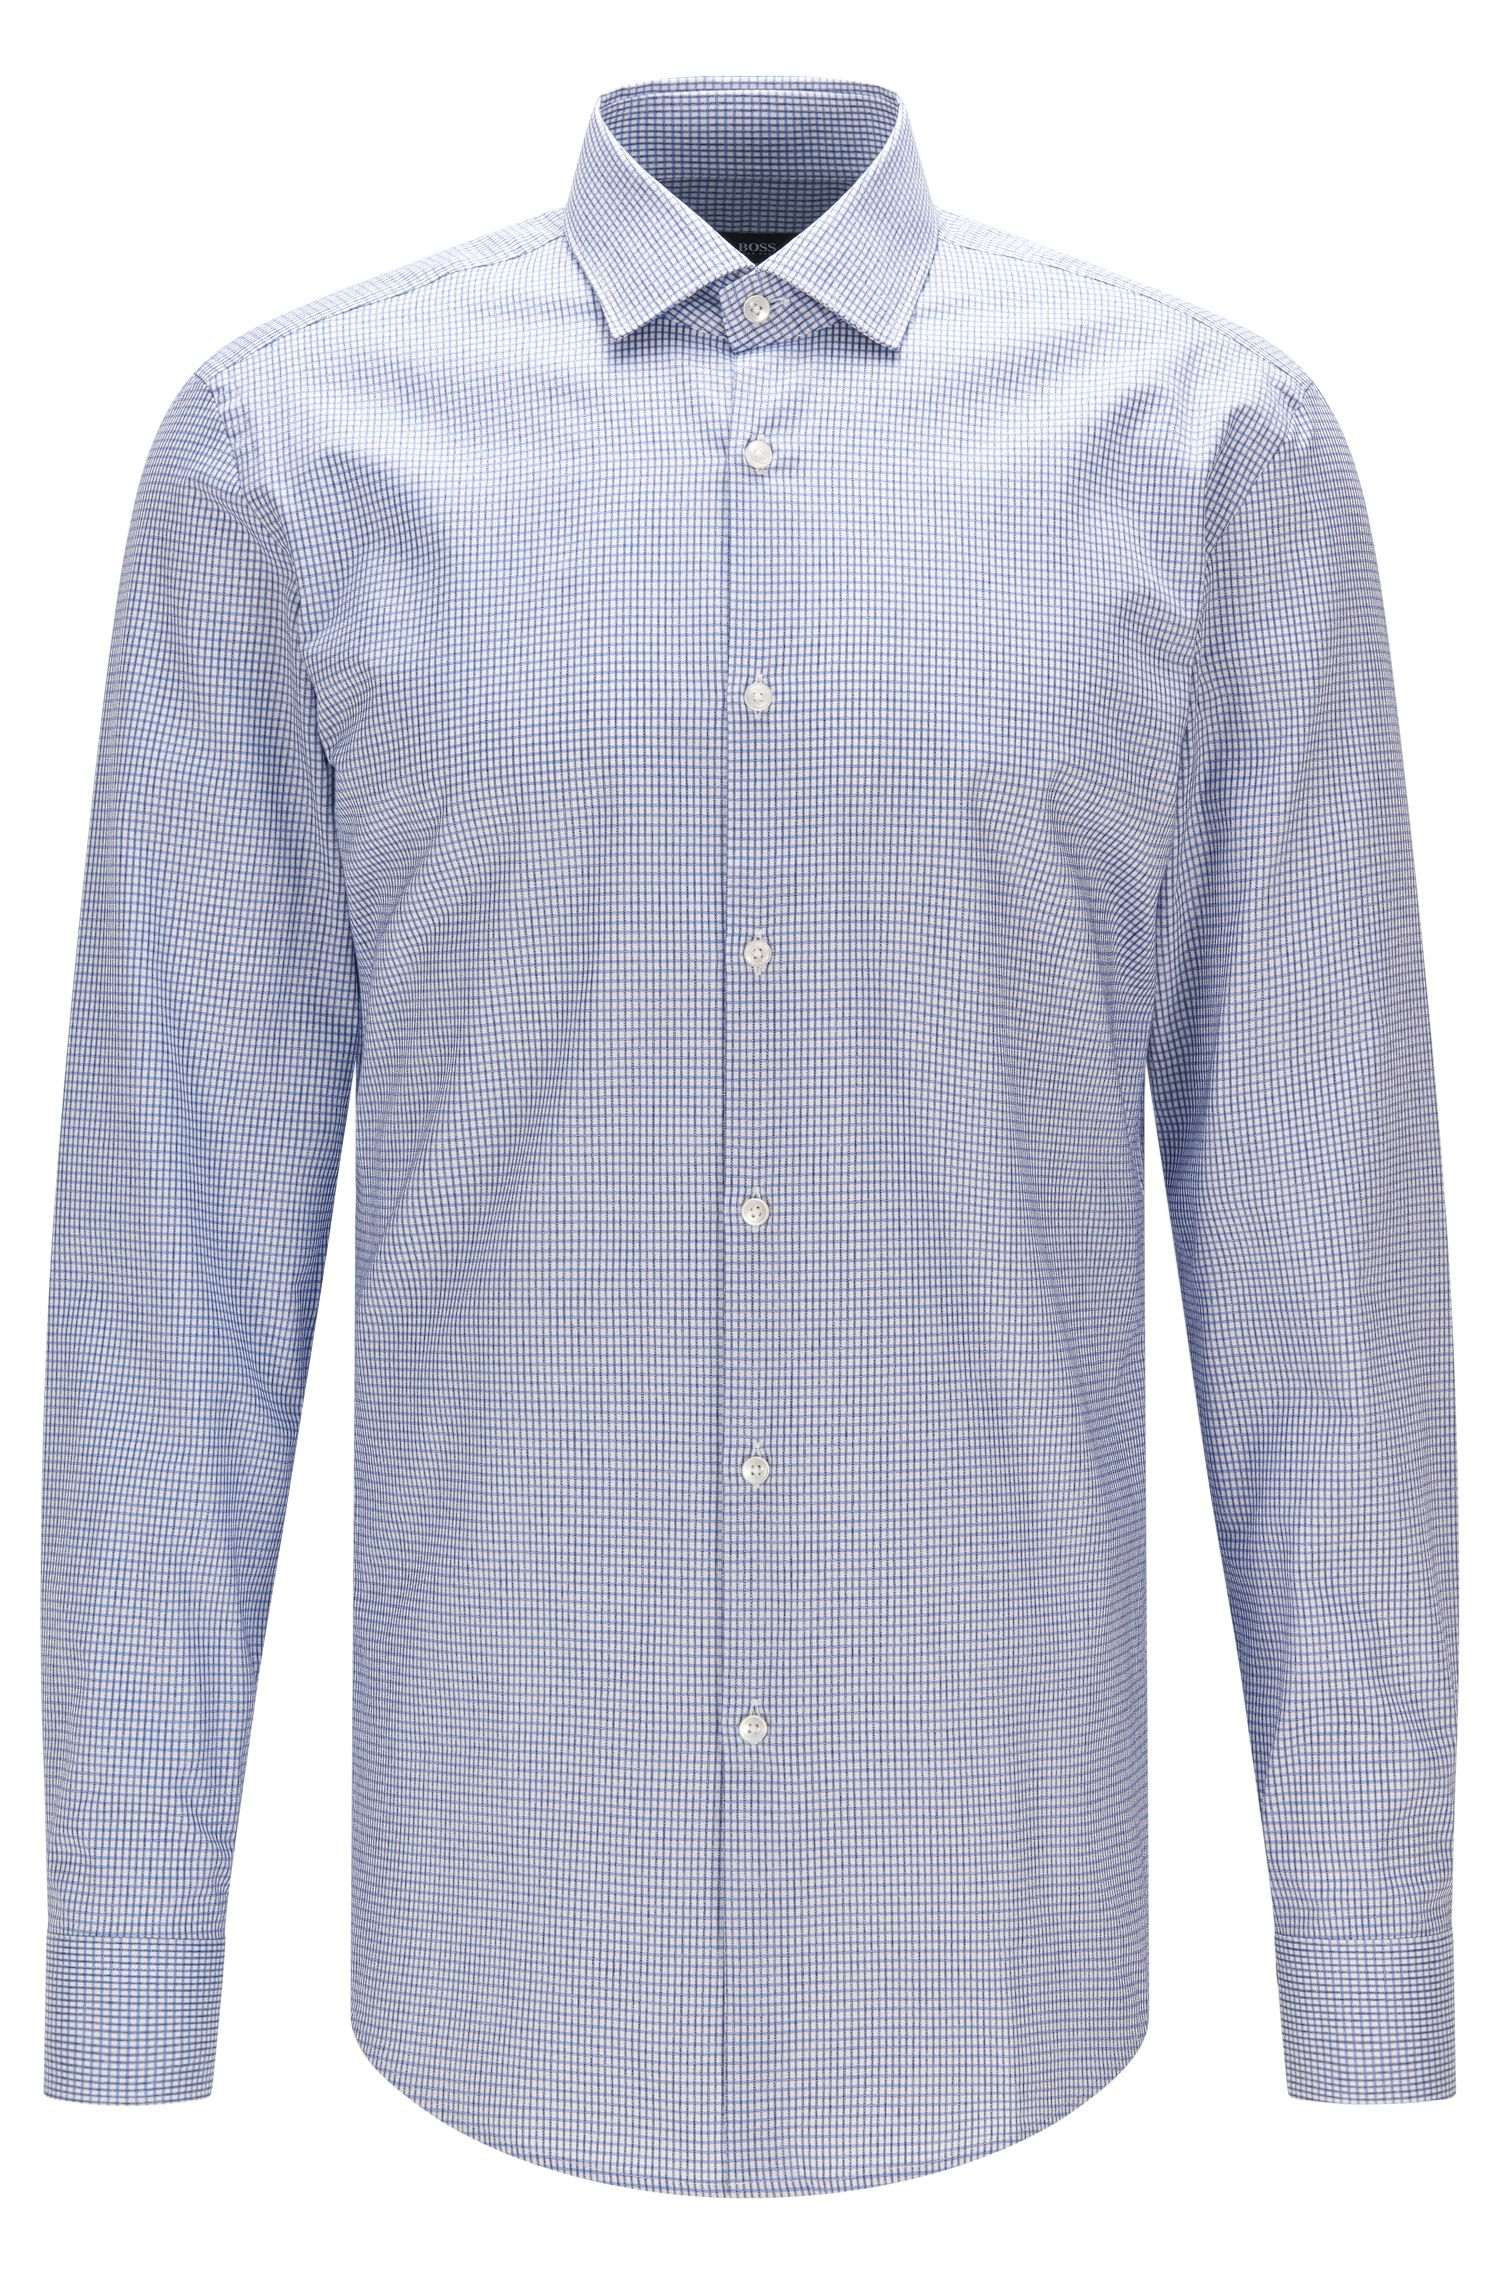 Tattersall Cotton Dress Shirt, Slim Fit | Ismo